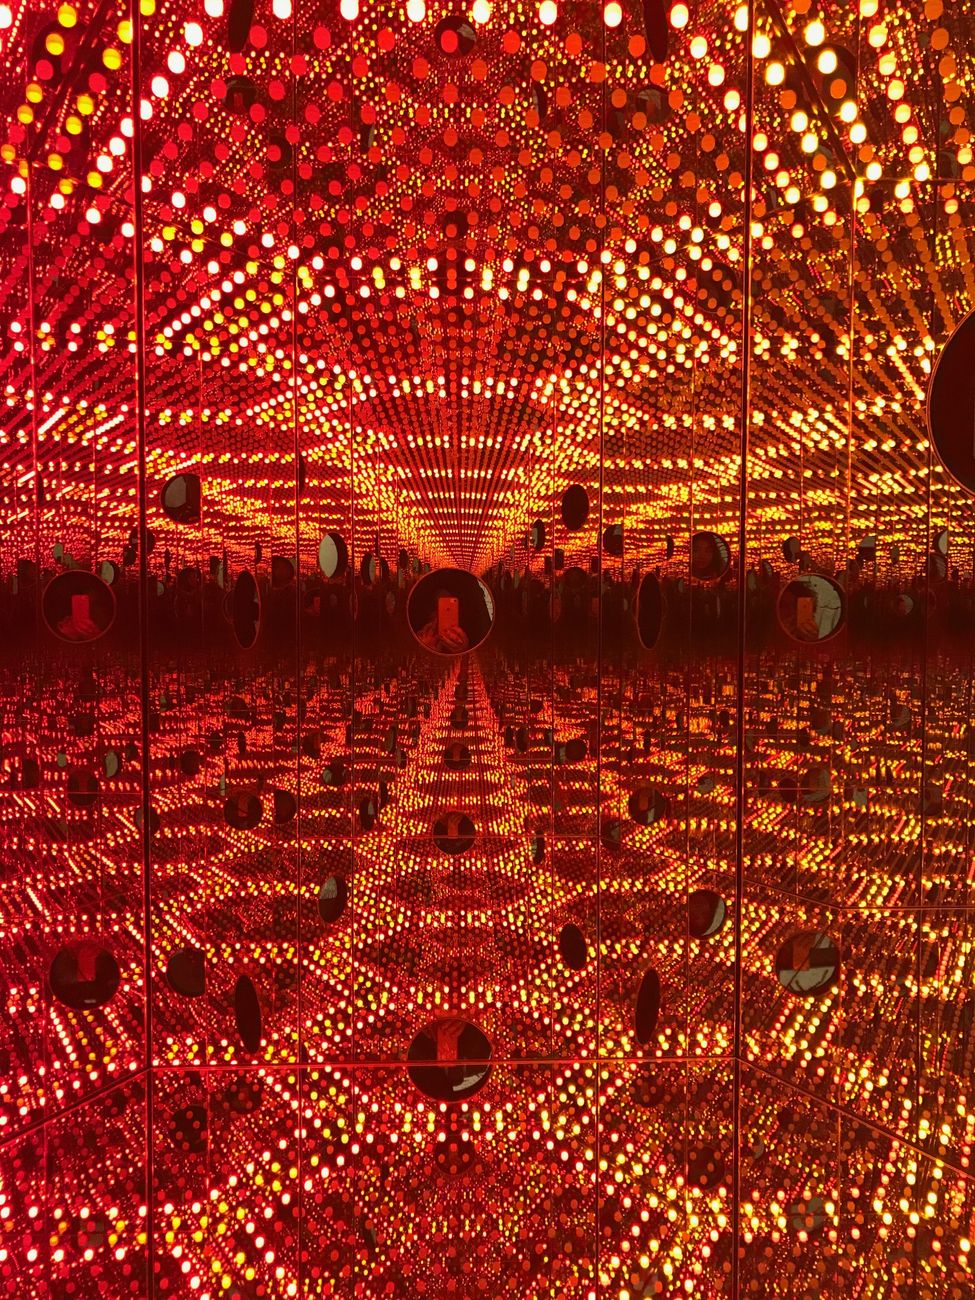 Yayoi Kusama. Life is the heart of a rainbow. Exhibition view at MACAN, Giacarta 2018